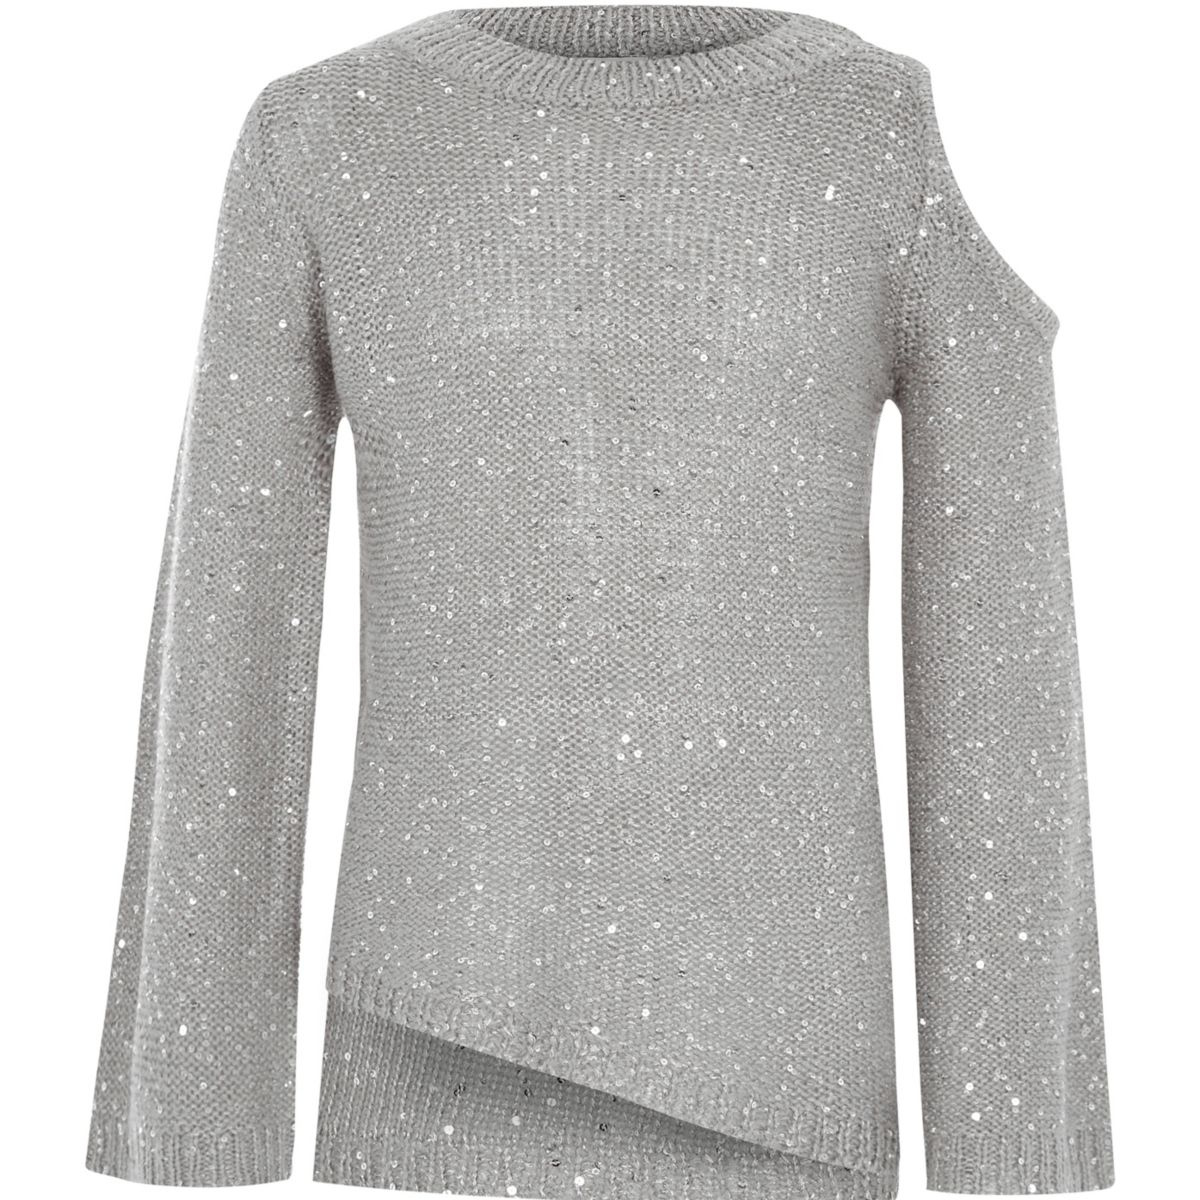 Girls grey sequin cold shoulder sweater - Cardigans / Sweaters ...